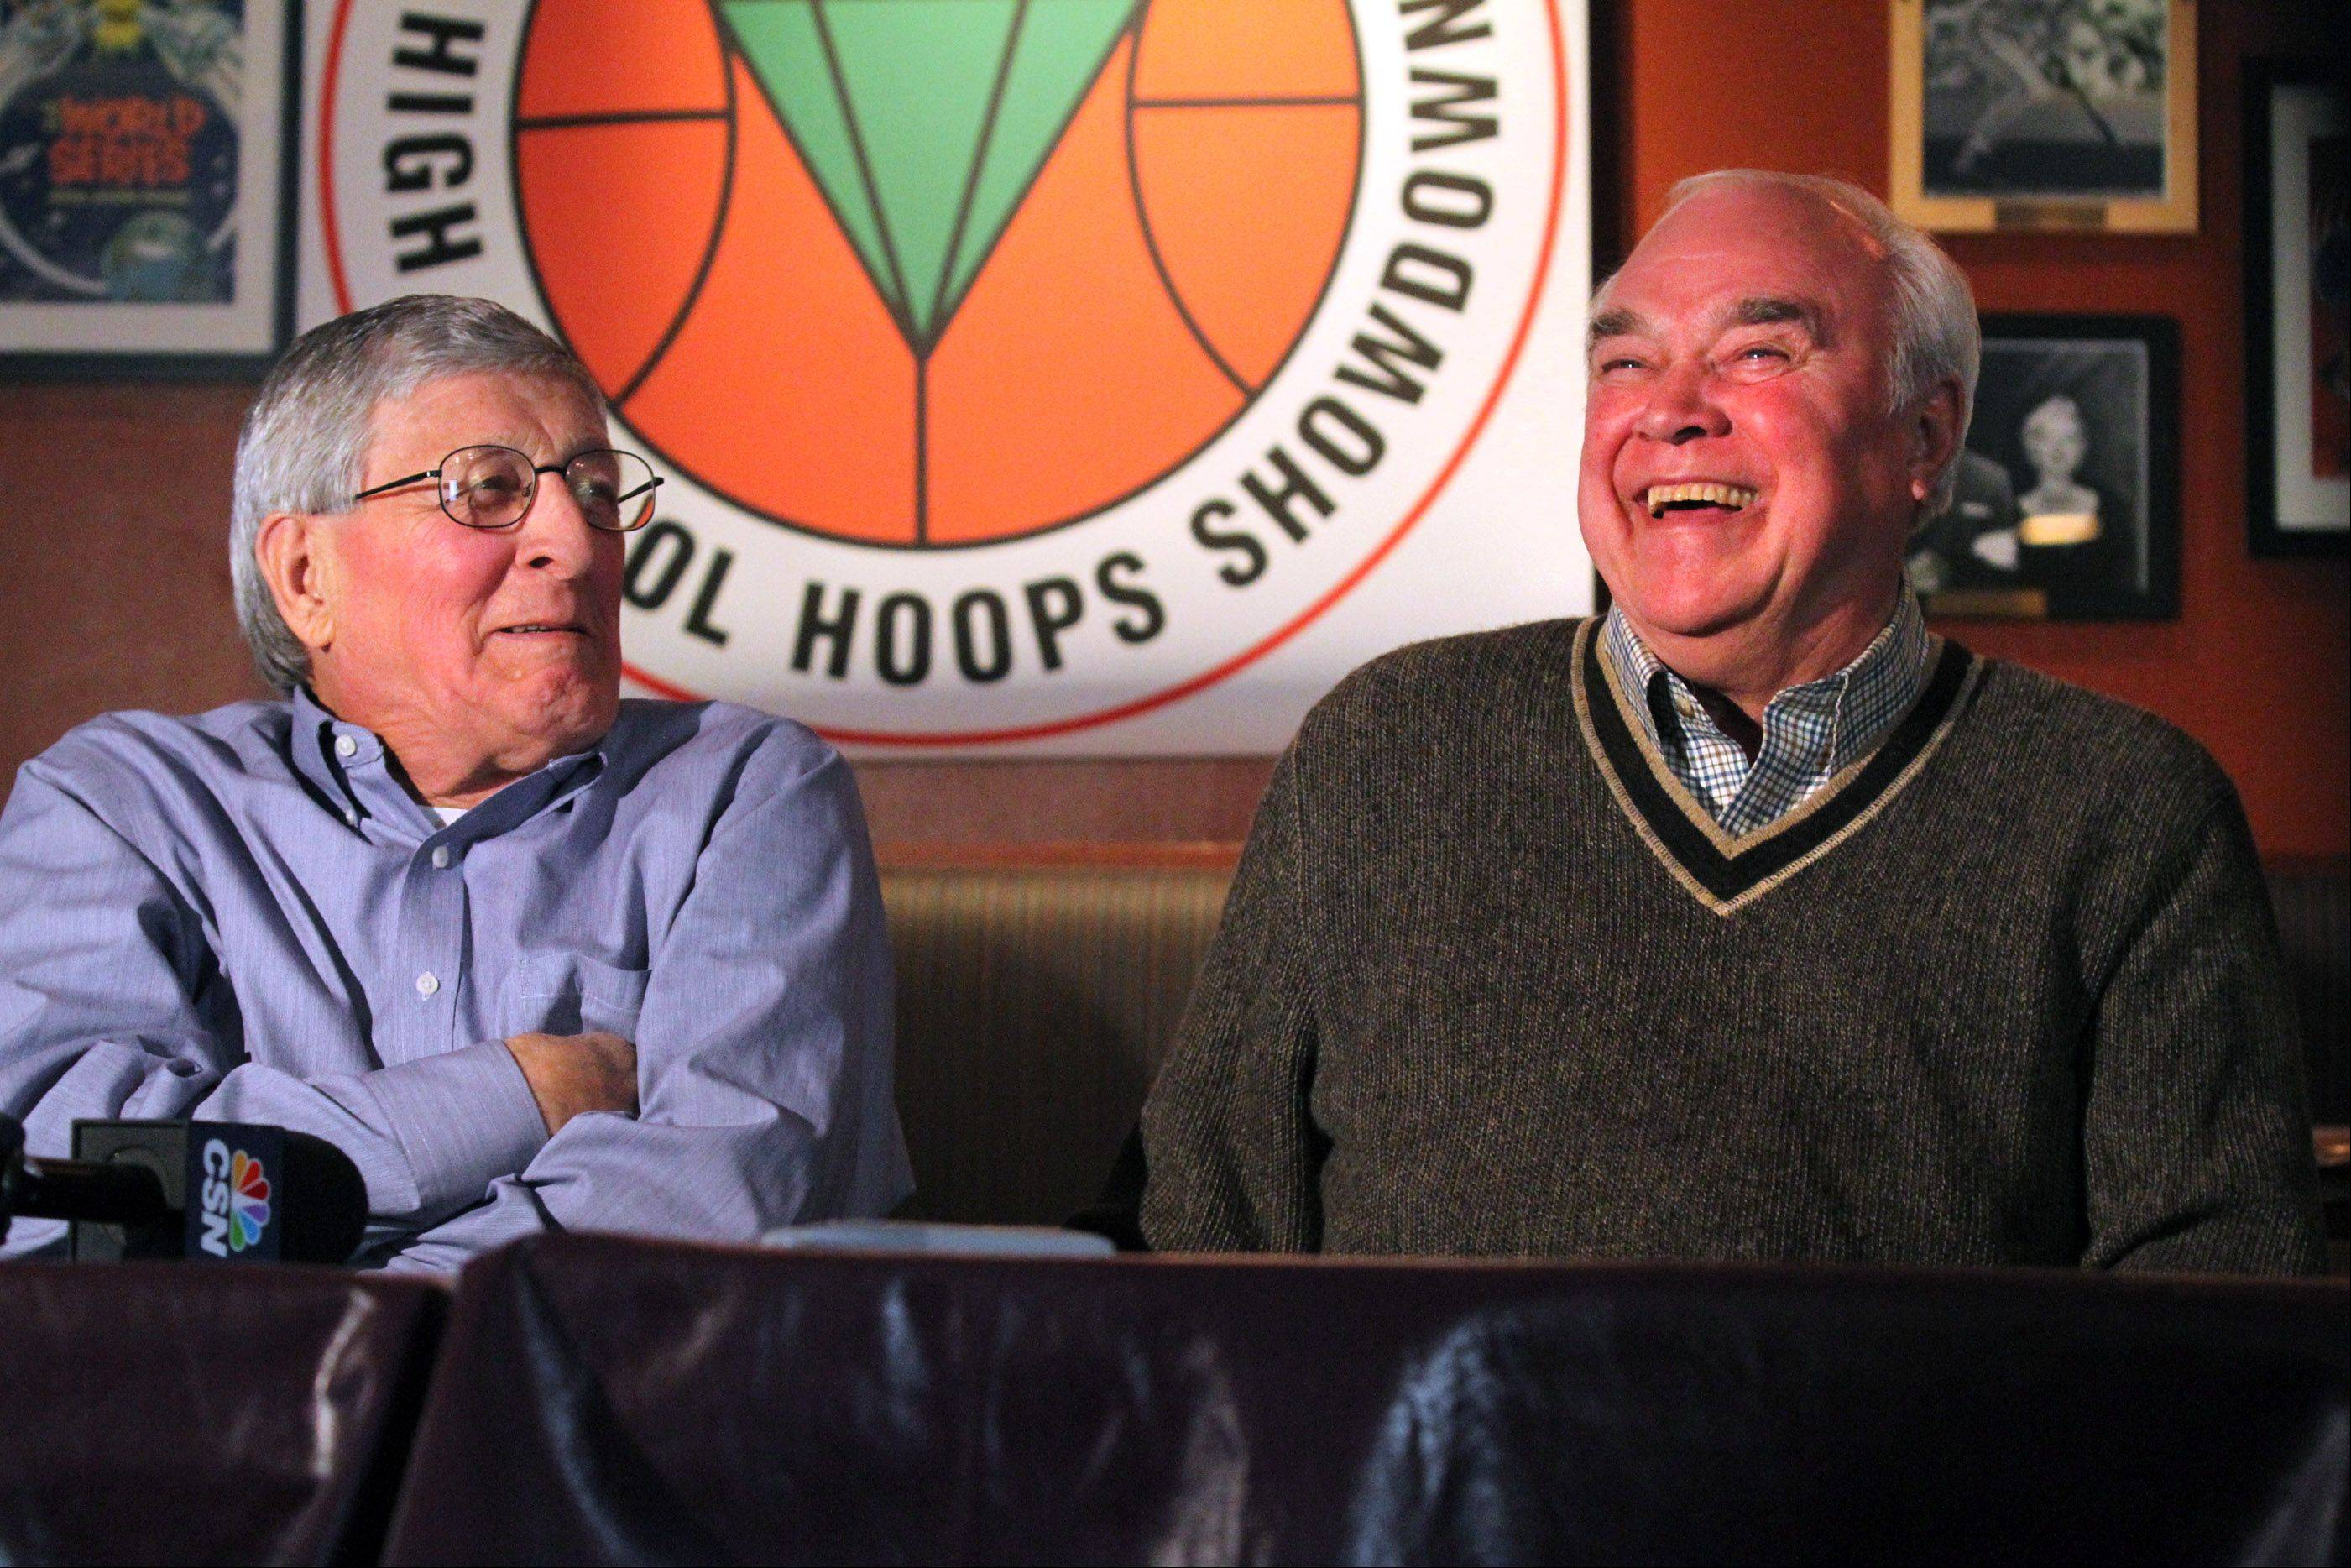 St. Joseph boys basketball coach Gene Pingatore, left, and West Aurora coach Gordie Kerkman, whose teams will play each other in game three of the National Guard High School Hoops Showdown at the Sears Centre on Saturday, enjoy a moment during a news conference at Lou Malnati's Pizzeria in Schaumburg on Wednesday.